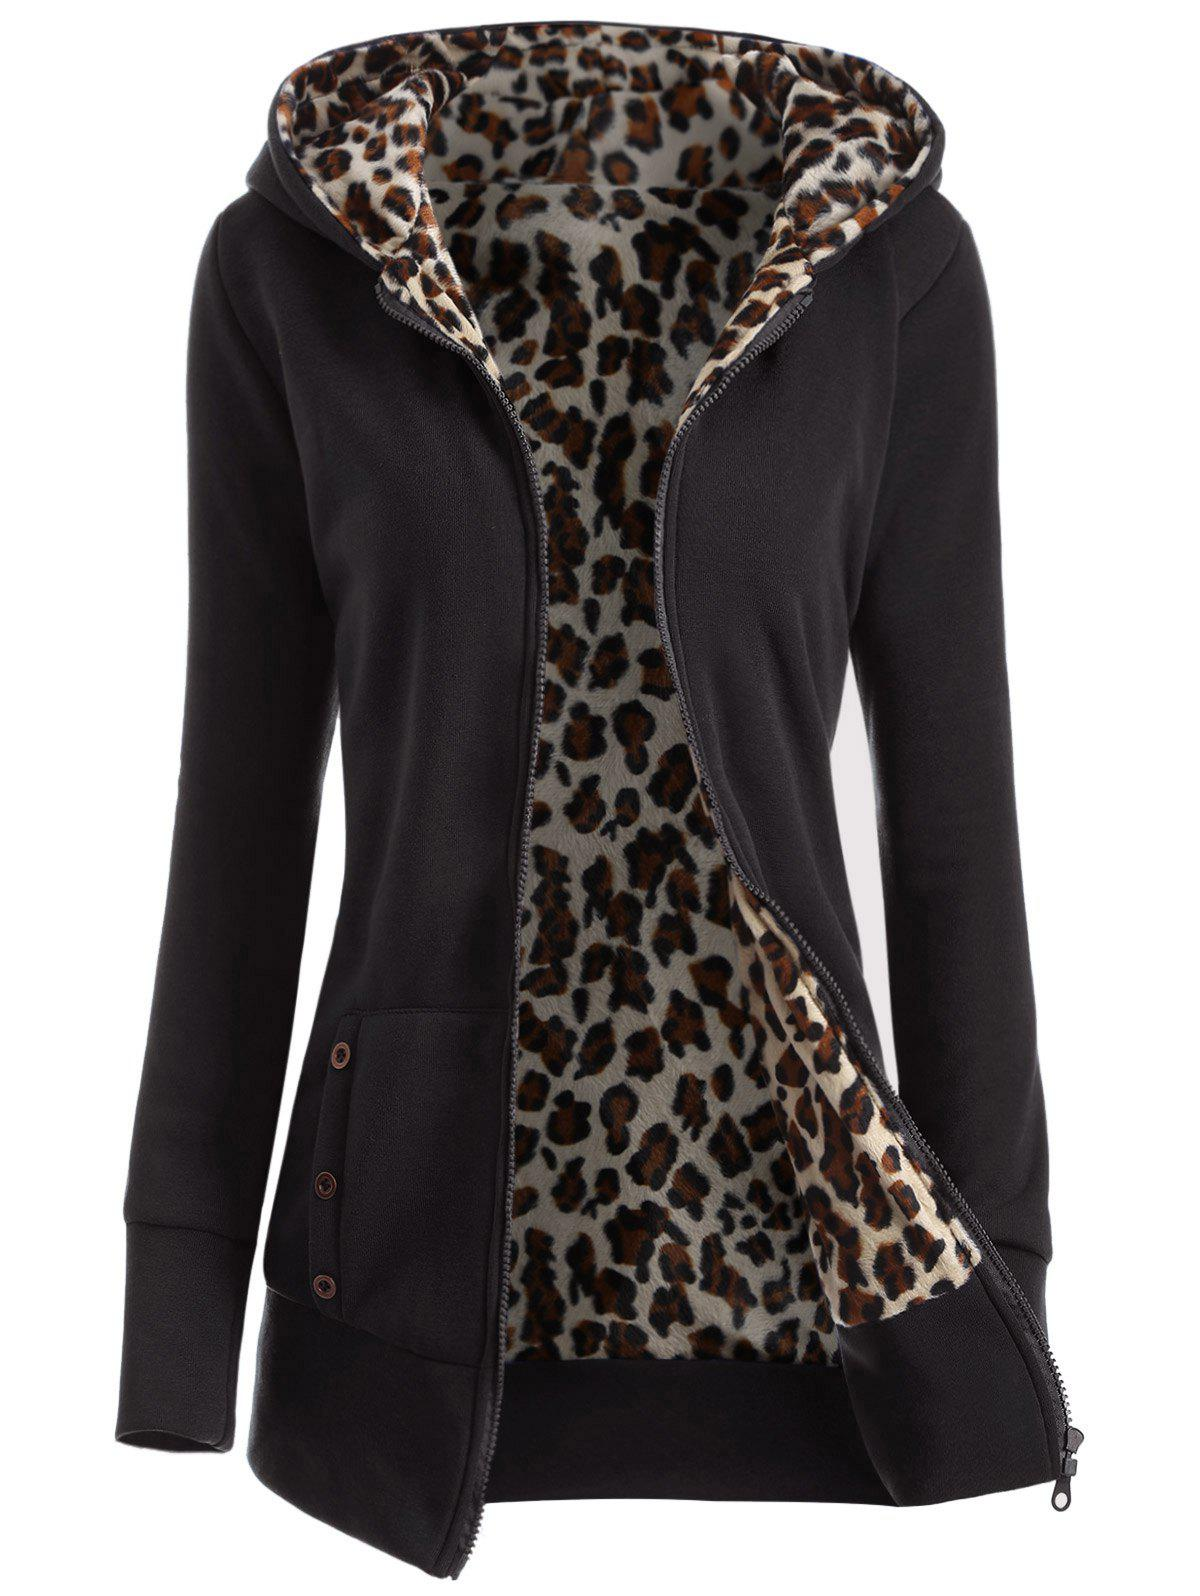 Thick Leopard Printed Inside HoodieWOMEN<br><br>Size: L; Color: BLACK; Material: Polyester; Shirt Length: Long; Sleeve Length: Full; Style: Casual; Pattern Style: Print; Season: Winter; Weight: 0.471kg; Package Contents: 1 x Hoodie;